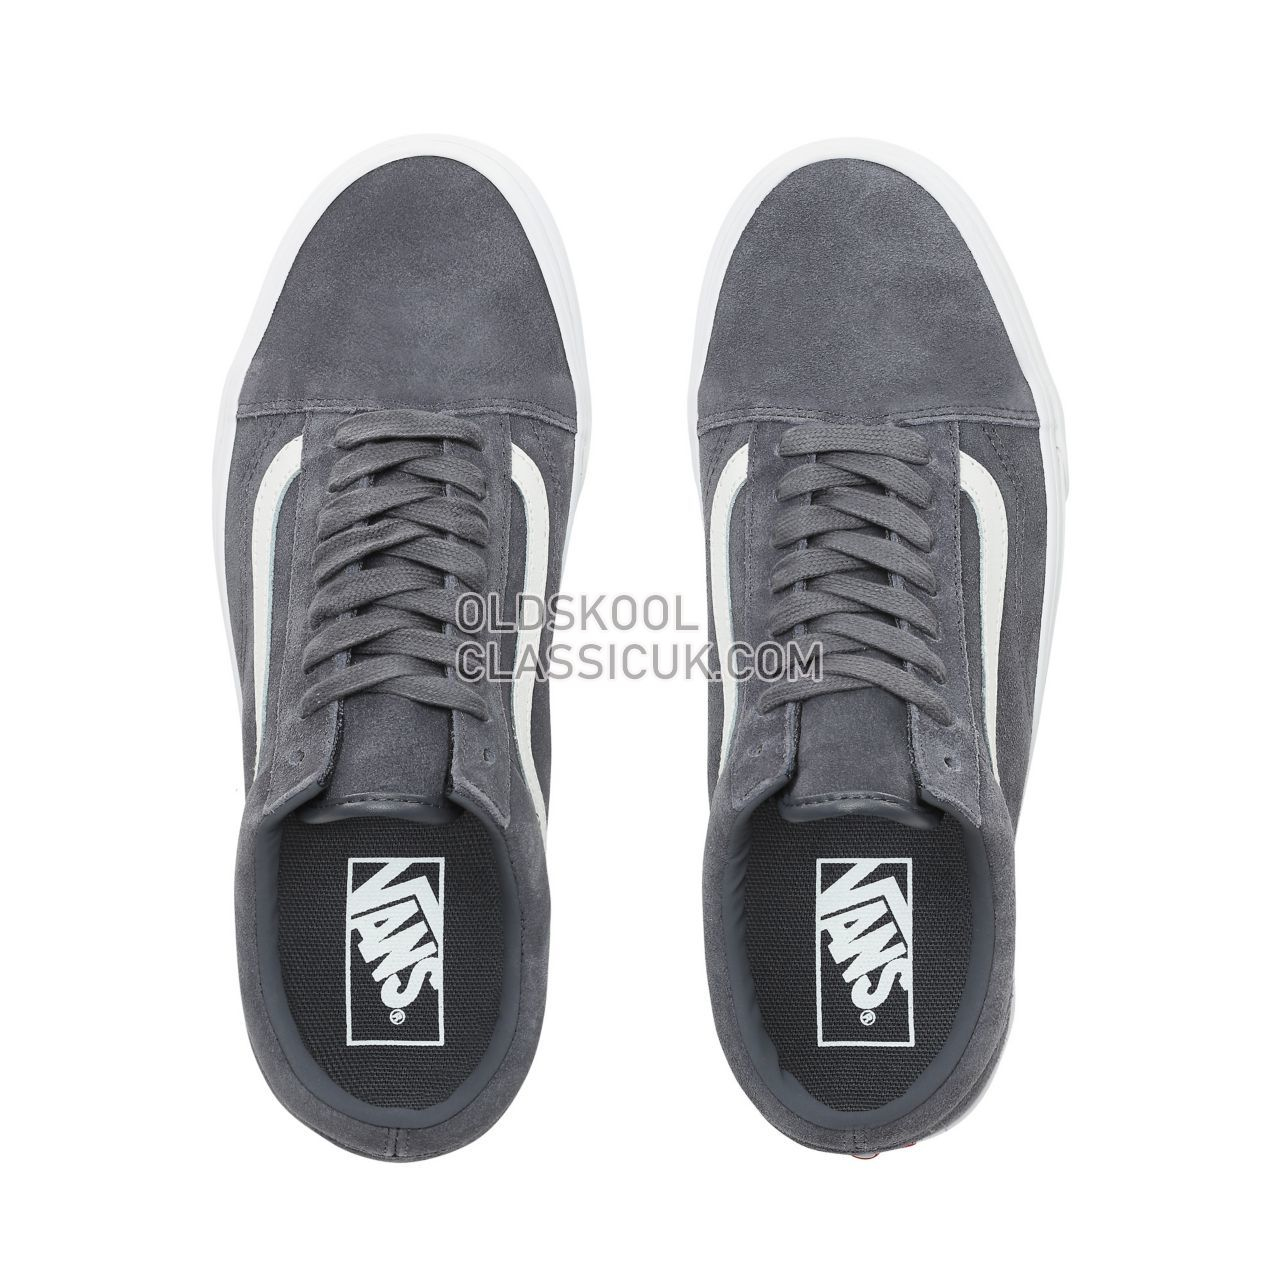 Vans Soft Suede Old Skool Sneakers Mens Womens Unisex (Soft Suede) Ebony/True White VN0A38G1VKE Shoes